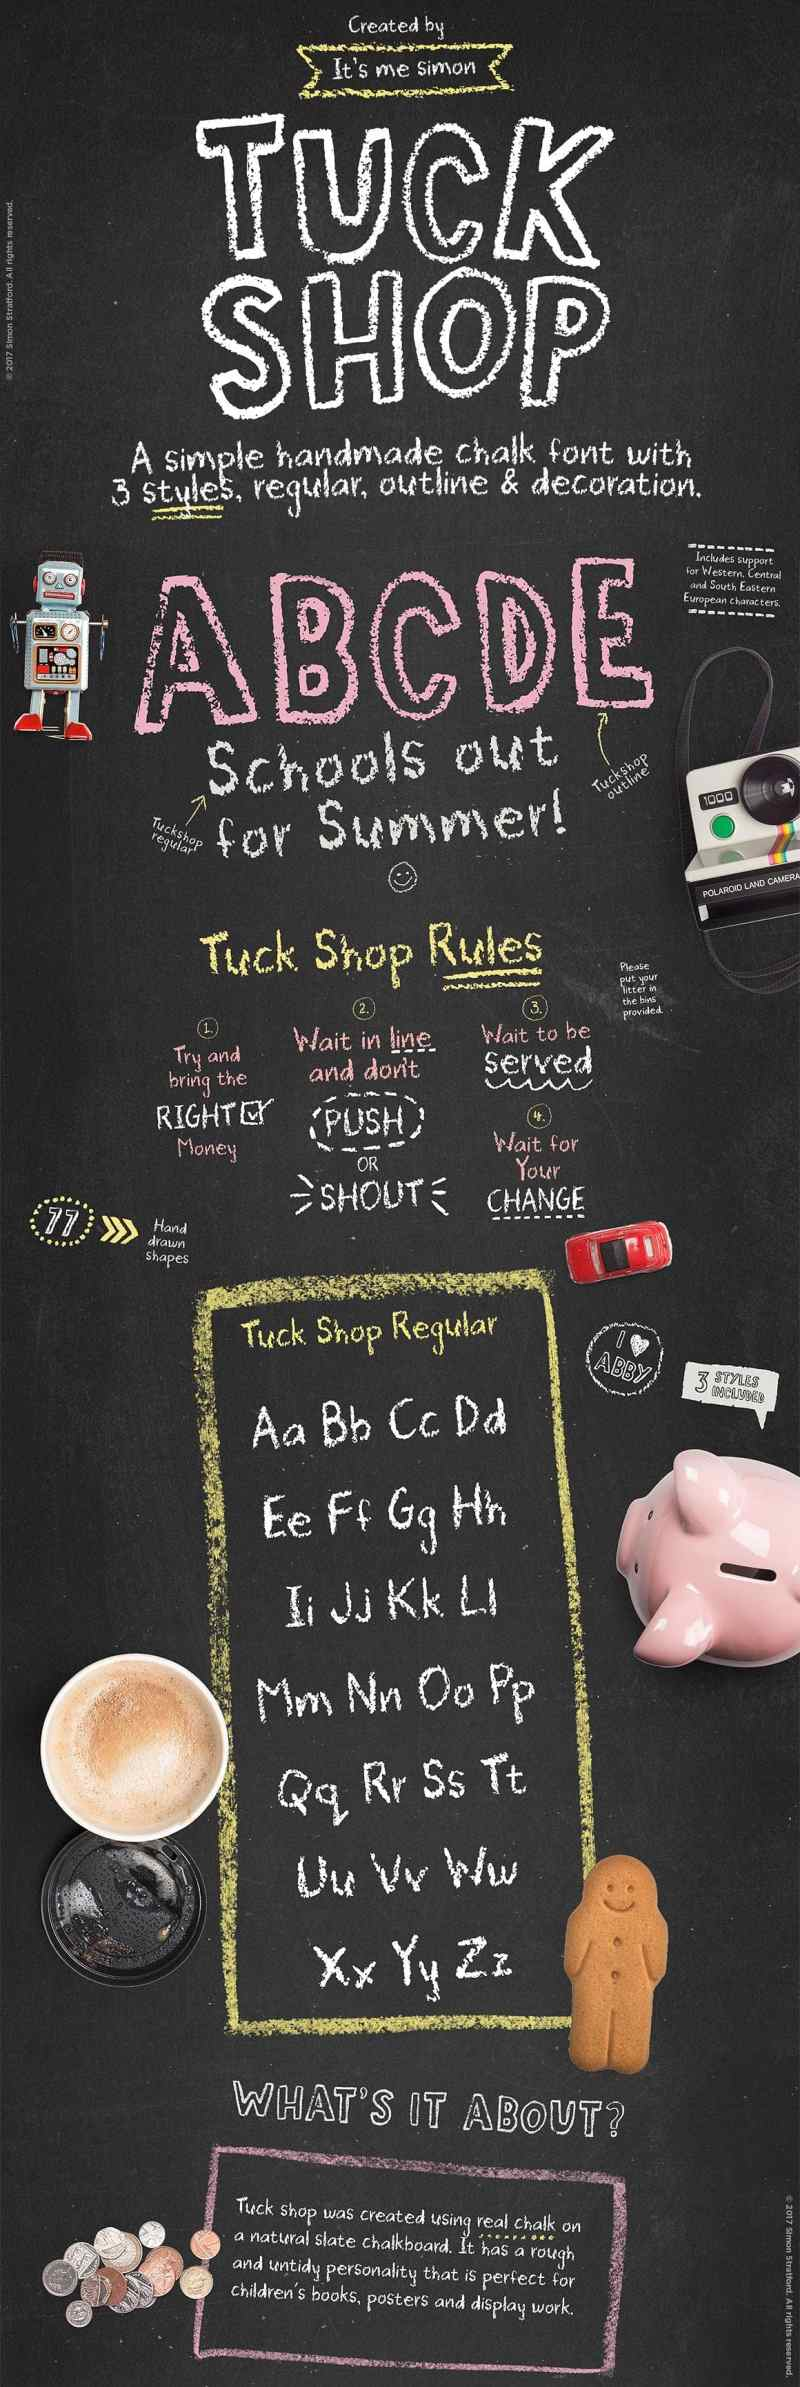 Tuck Shop font - Display Like Save Tuck Shop font - Display - 1 Tuck Shop font - Display - 2 Tuck Shop font - Display - 3 Tuck Shop font - Display - 4 Tuck Shop font - Display - 5 Tuck Shop font - Display - 6 Tuck Shop font - Display - 7 Tuck shop was handmade using real chalk and a natural slate chalkboard.